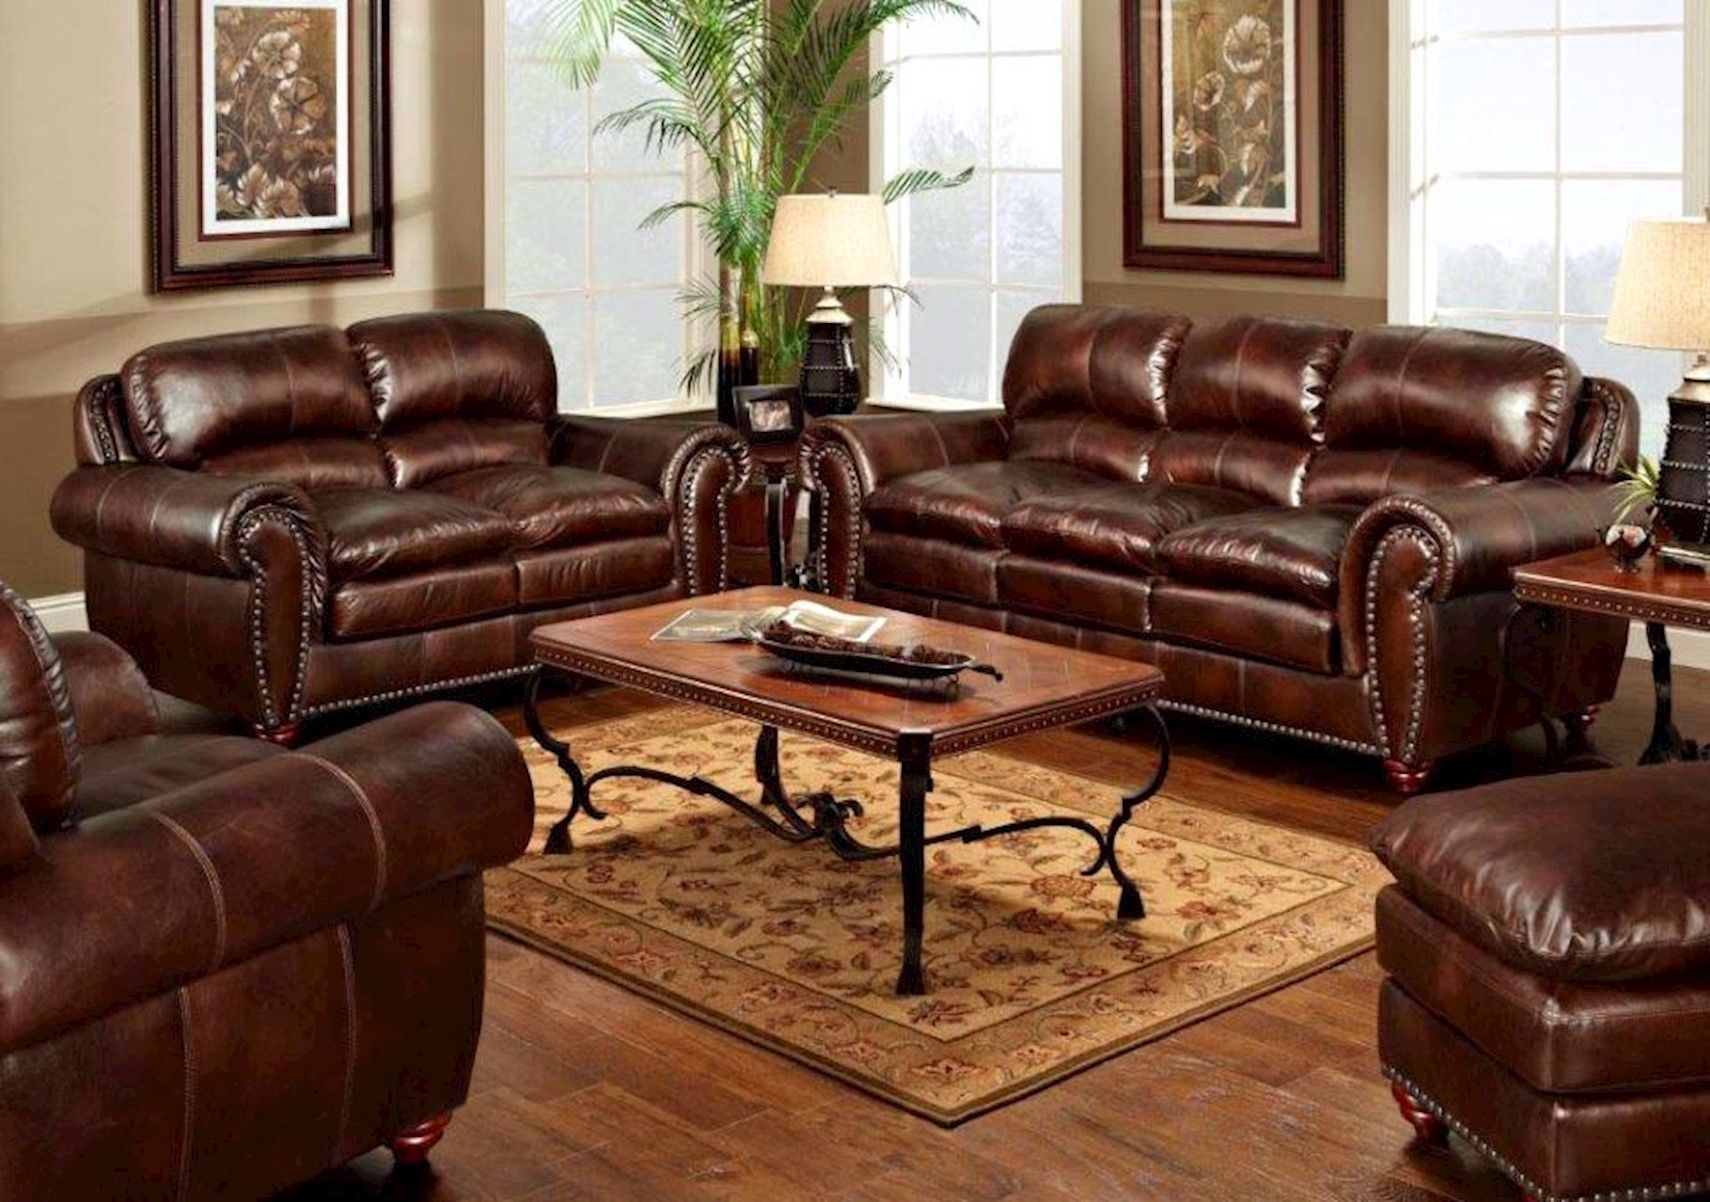 Lacks  Aspen All-Leather 13-Pc Living Room Set  Leather couches